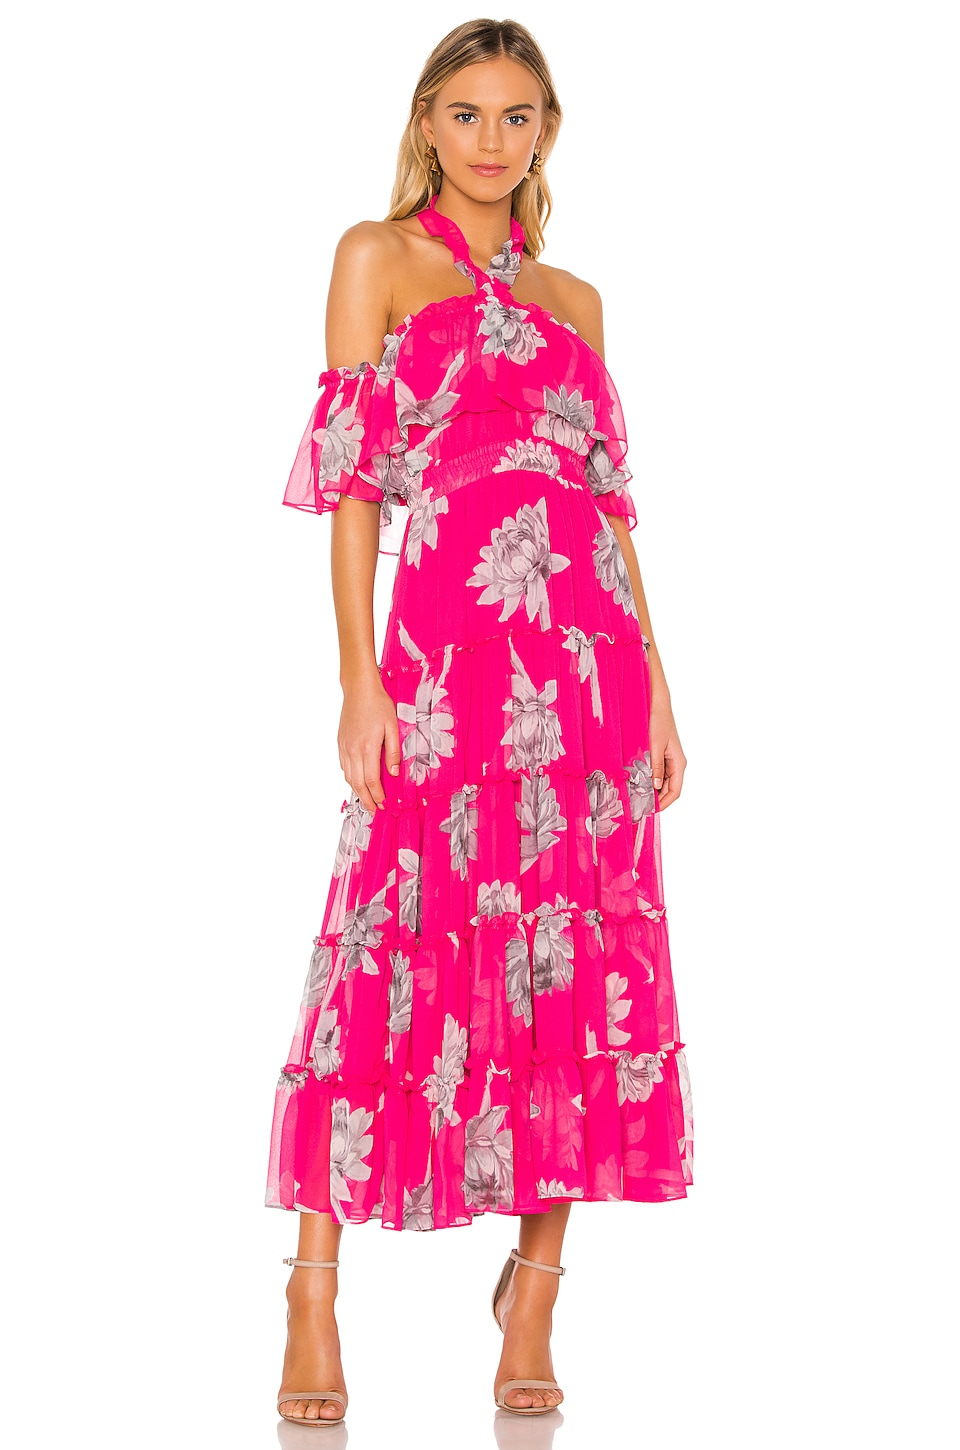 MISA Los Angeles X REVOLVE Mila Dress in Fuchsia Floral